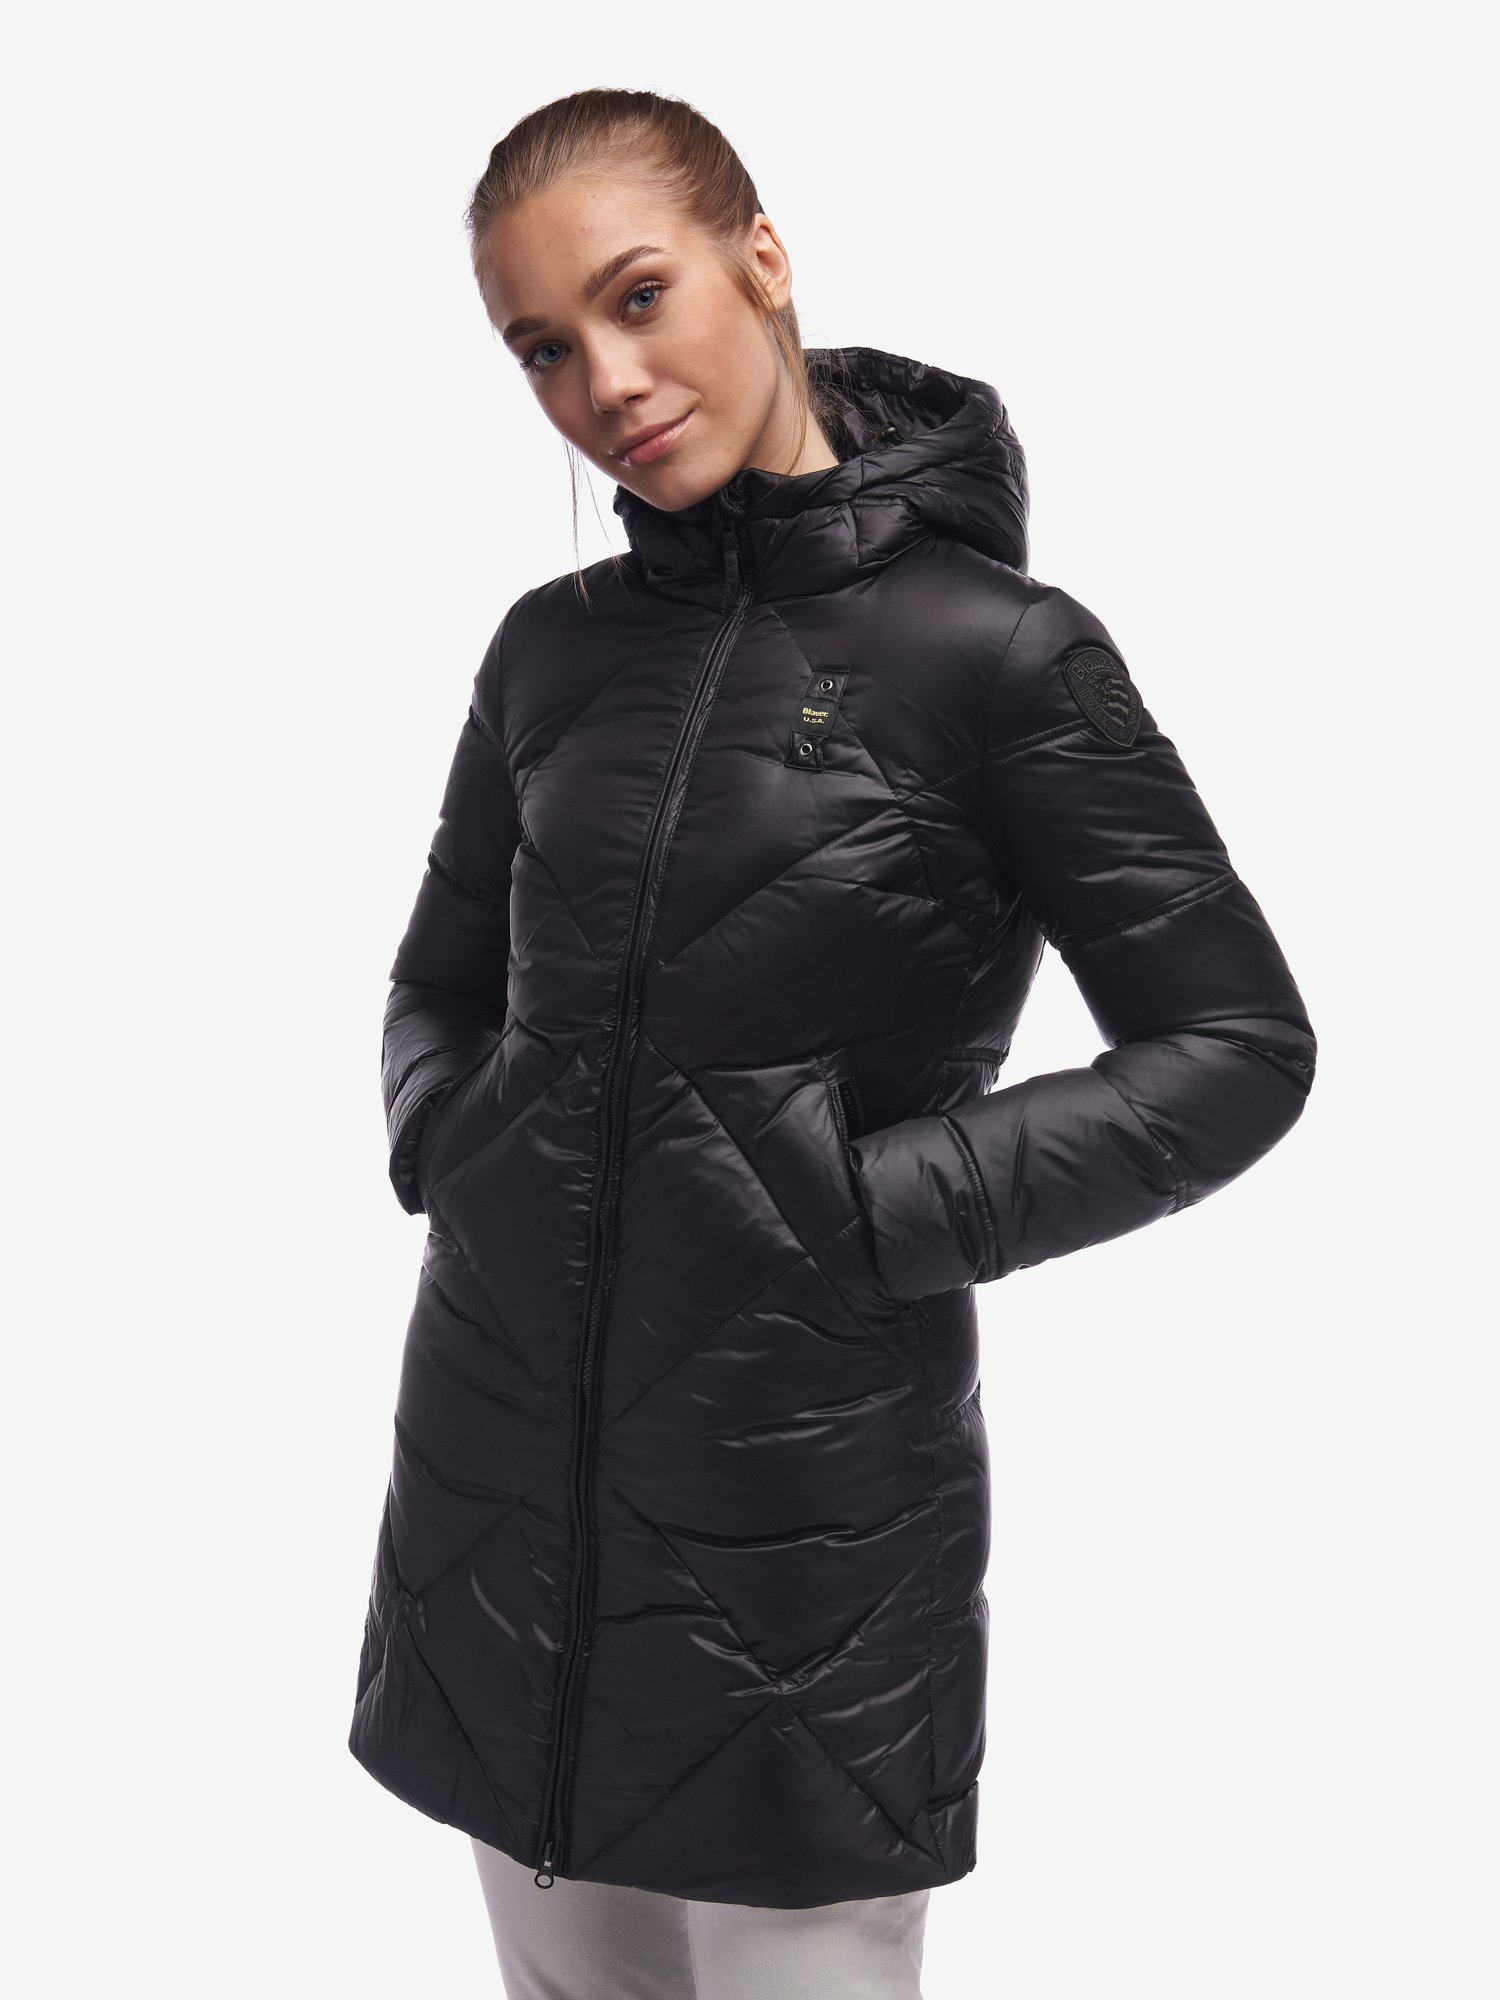 BLACK LONG DOWN JACKET IN IRIDESCENT NYLON - Blauer